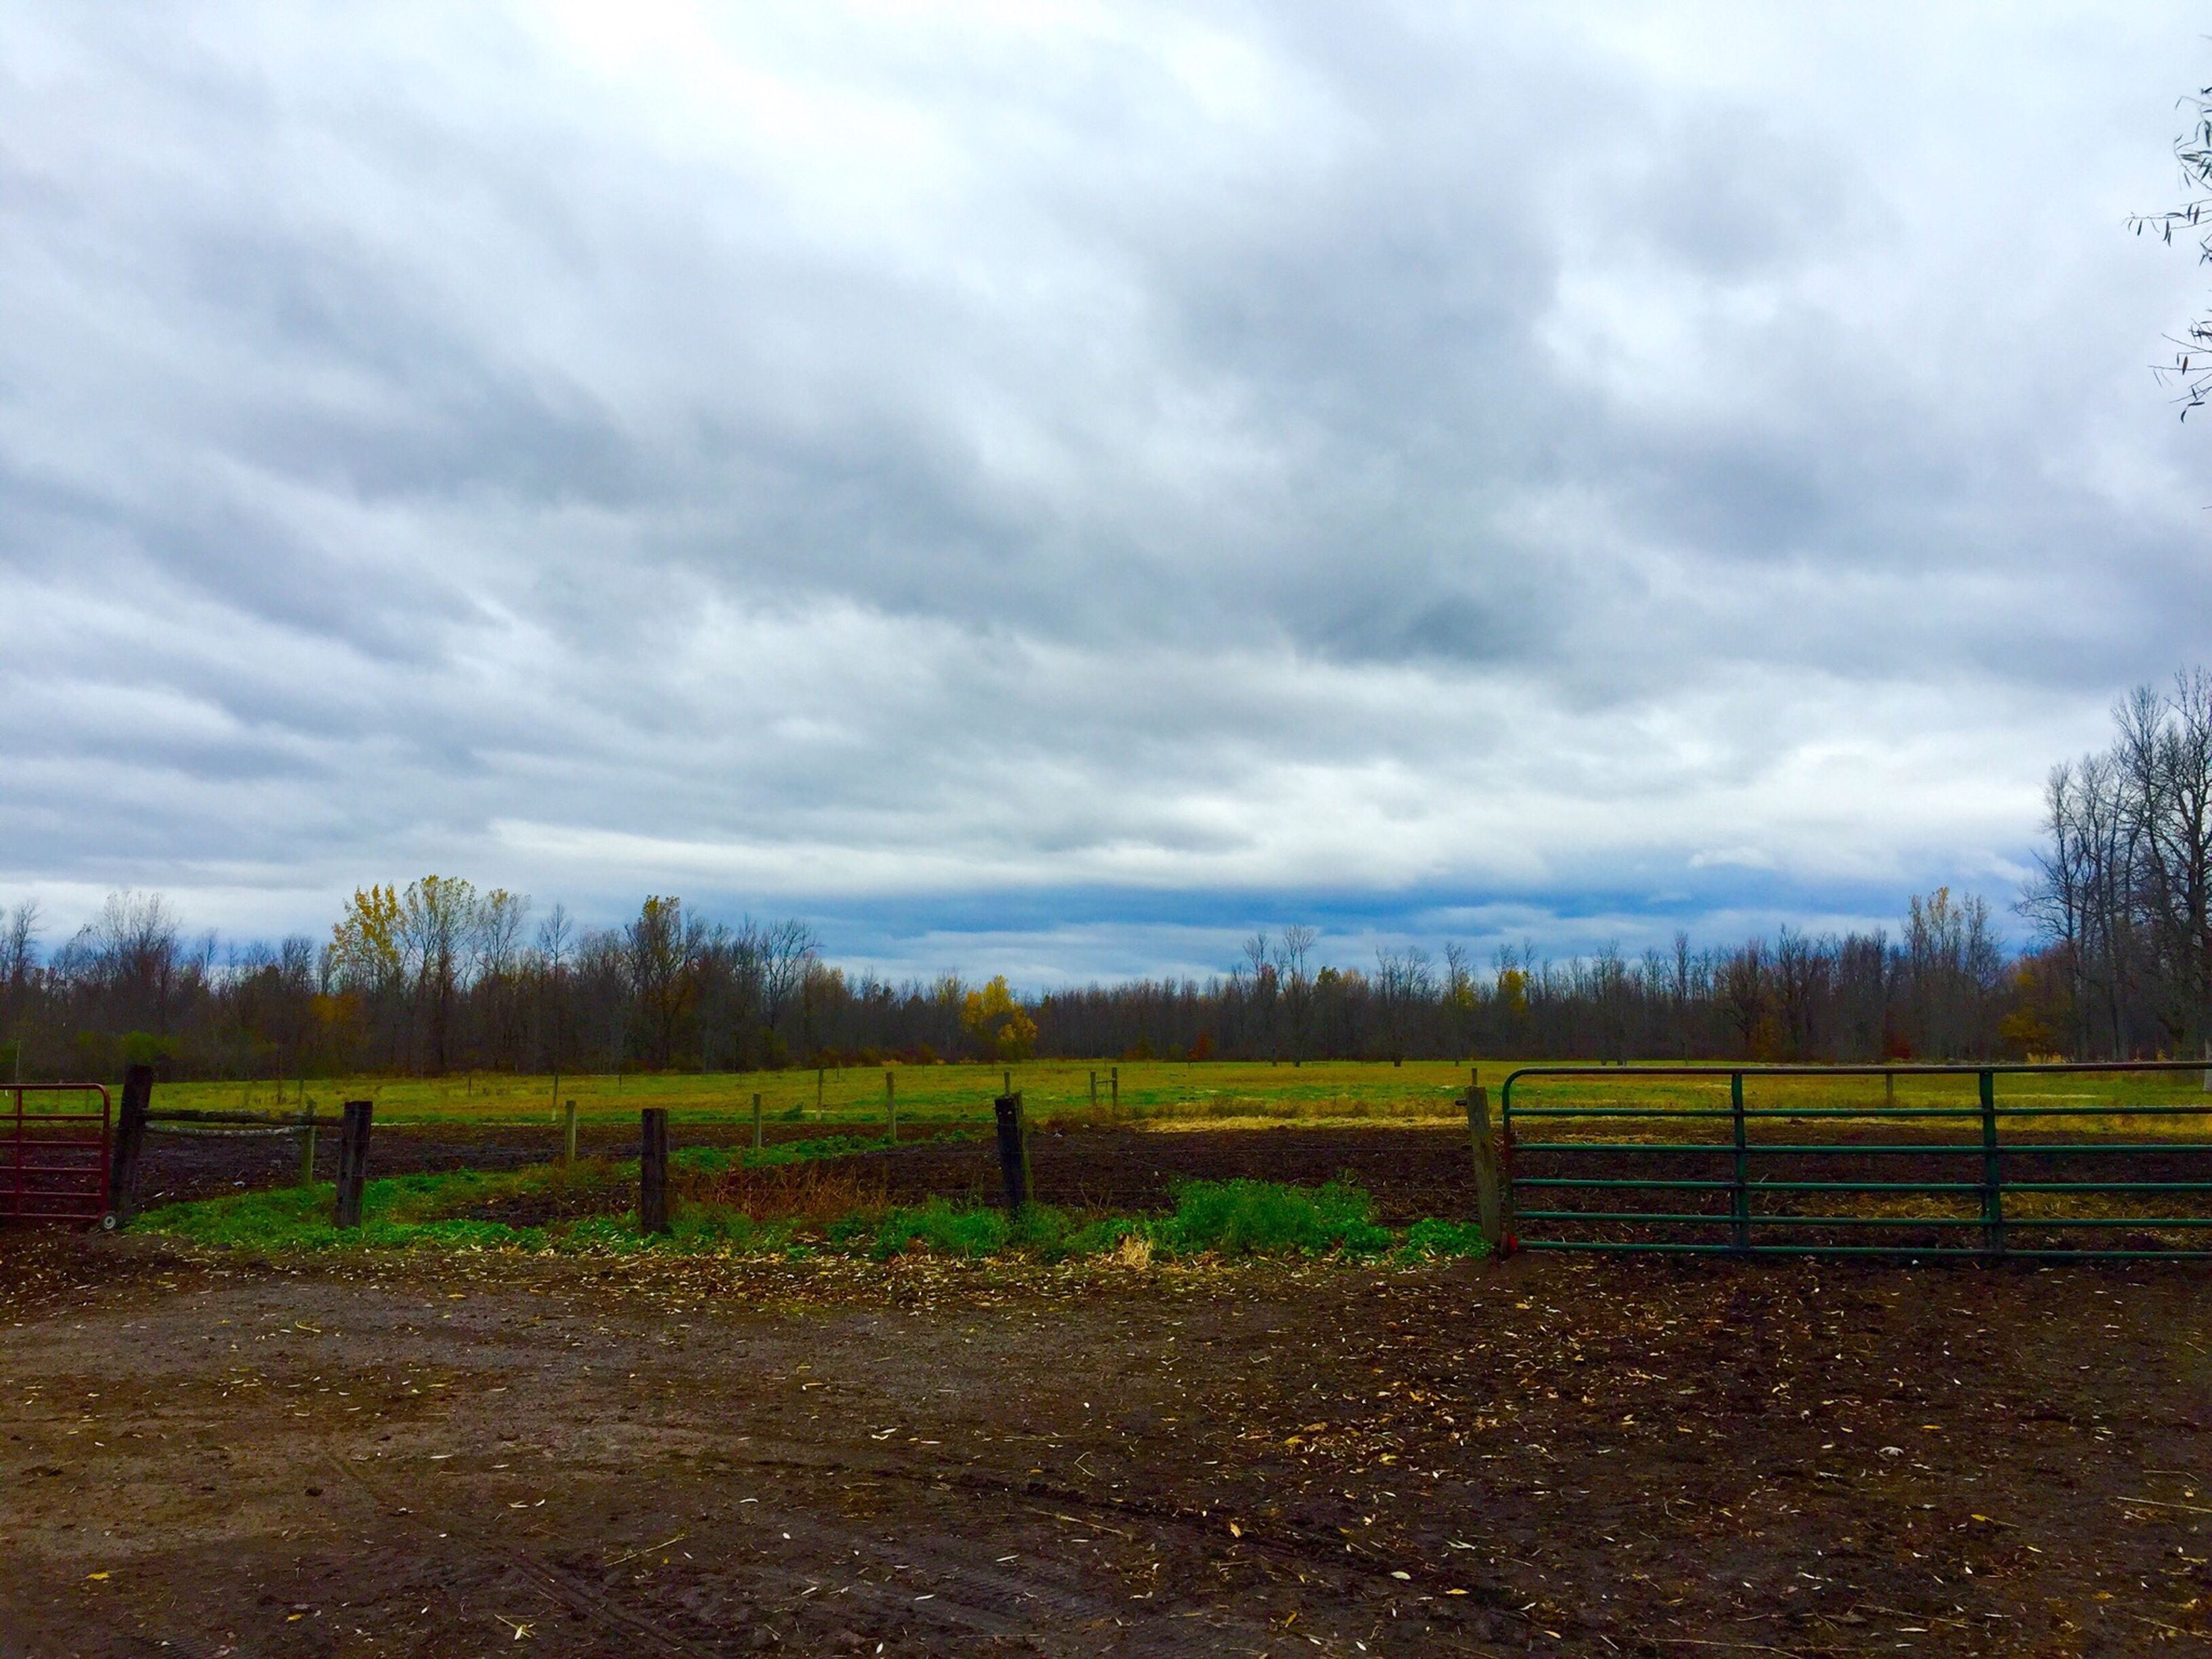 sky, cloud - sky, field, landscape, cloudy, tranquility, fence, tranquil scene, grass, scenics, nature, rural scene, cloud, beauty in nature, tree, agriculture, overcast, grassy, farm, weather